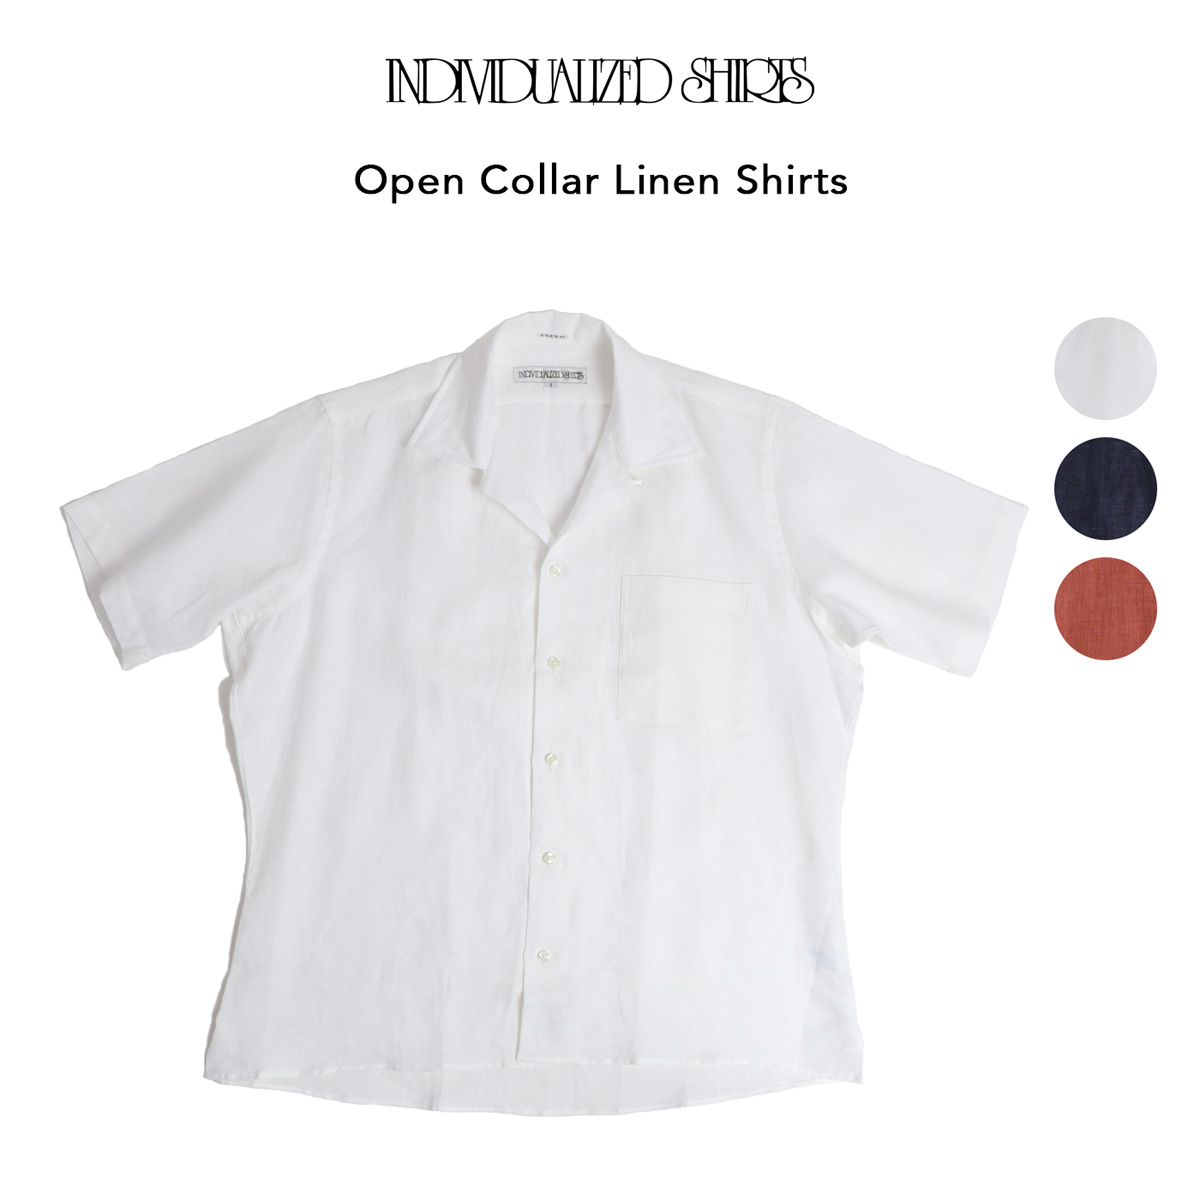 INDIVIDUALIZED SHIRTS オープンカラーリネン半袖シャツ 全3色 Camp Coller Shirts Athletic Fit 100% Pure Linen 送料無料